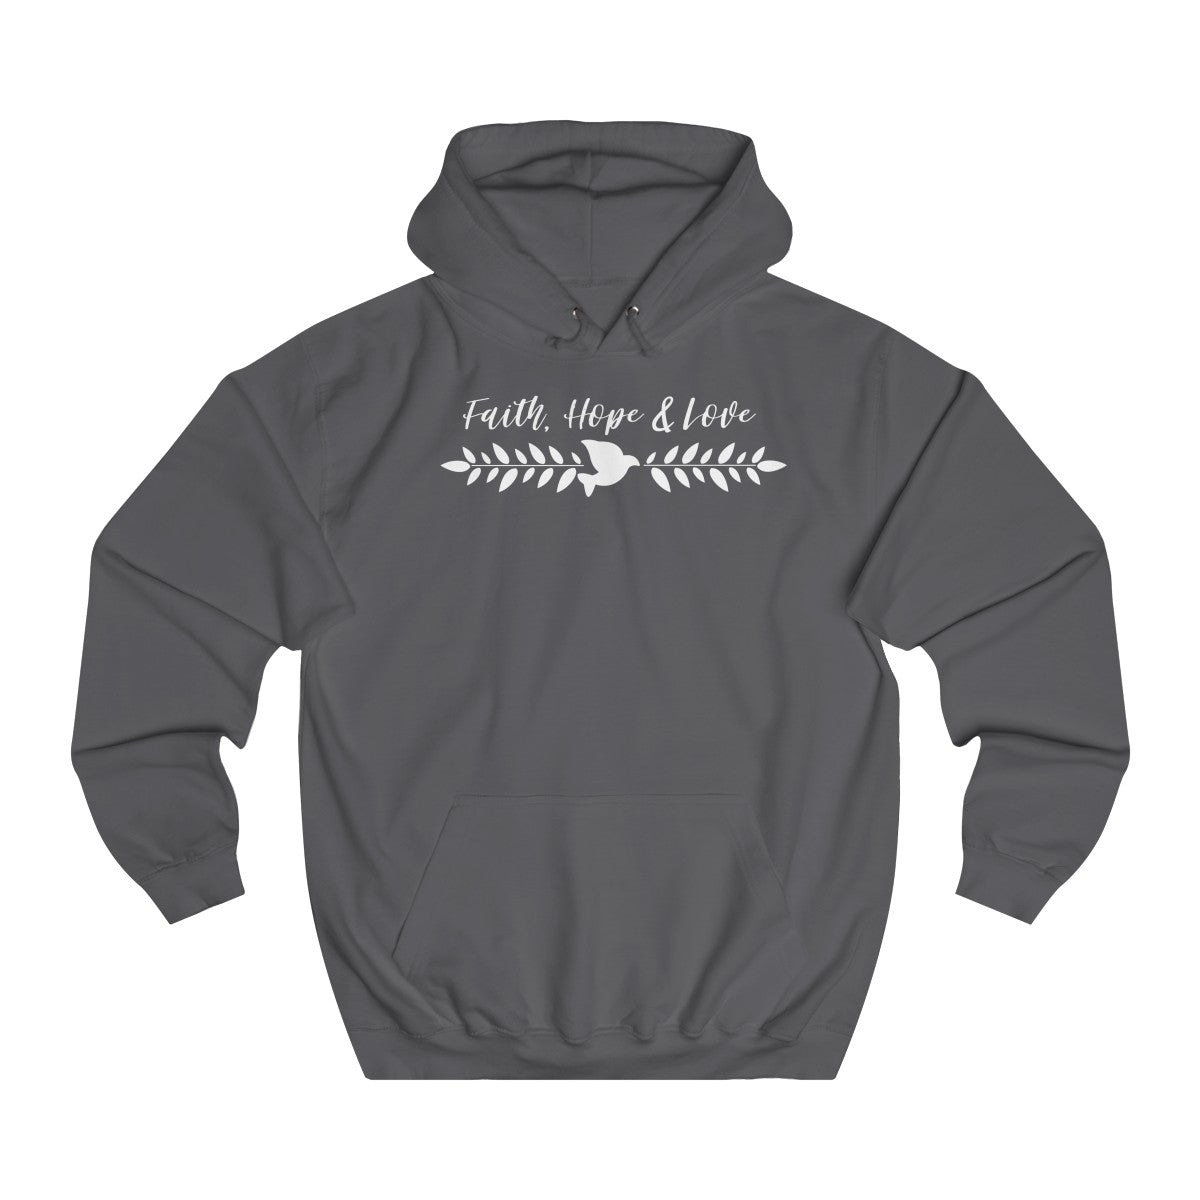 Faith, Hope & Love Hoodie